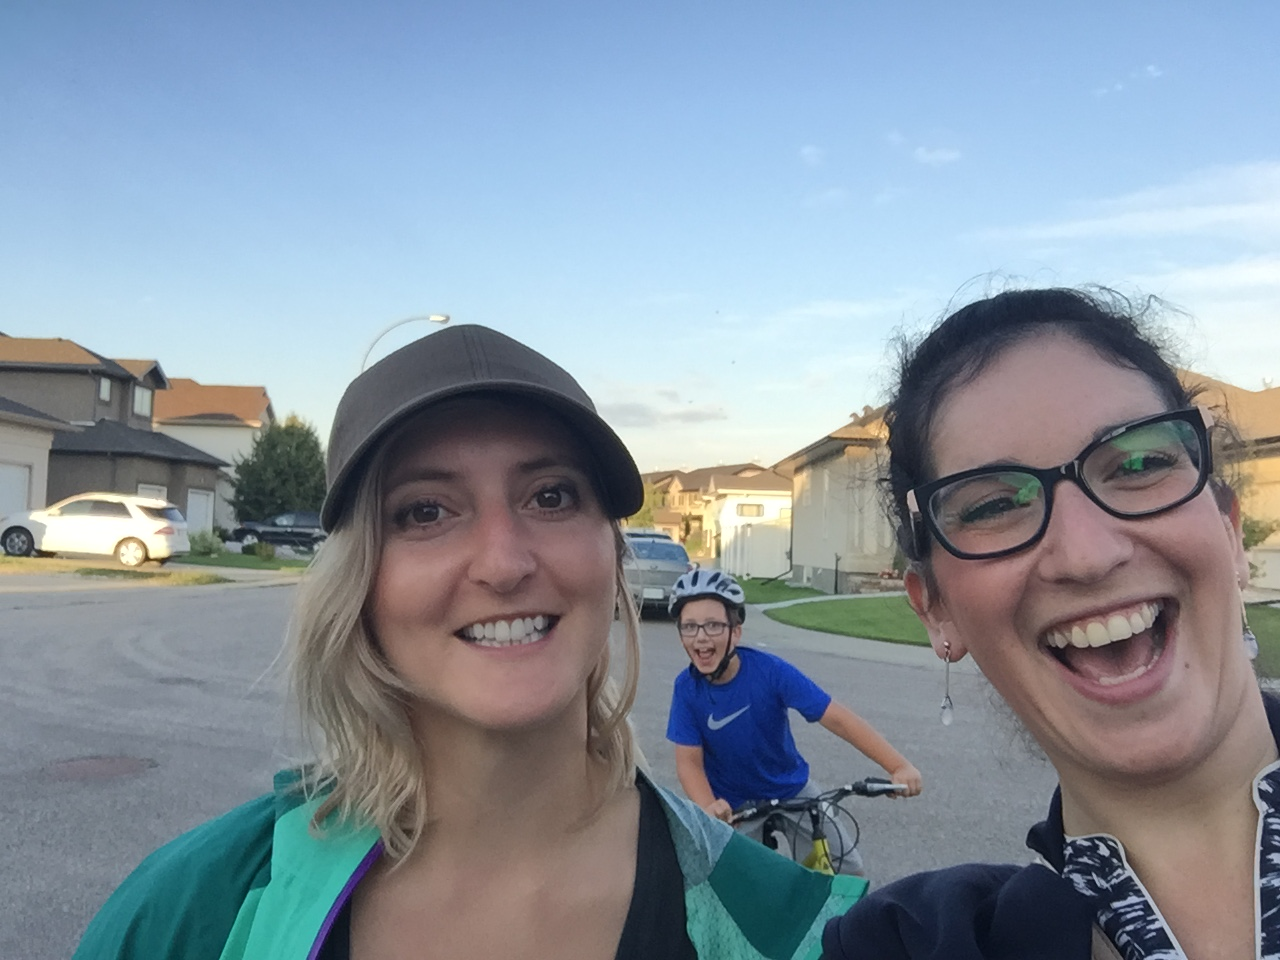 Doorknocking_and_photobombs.jpeg